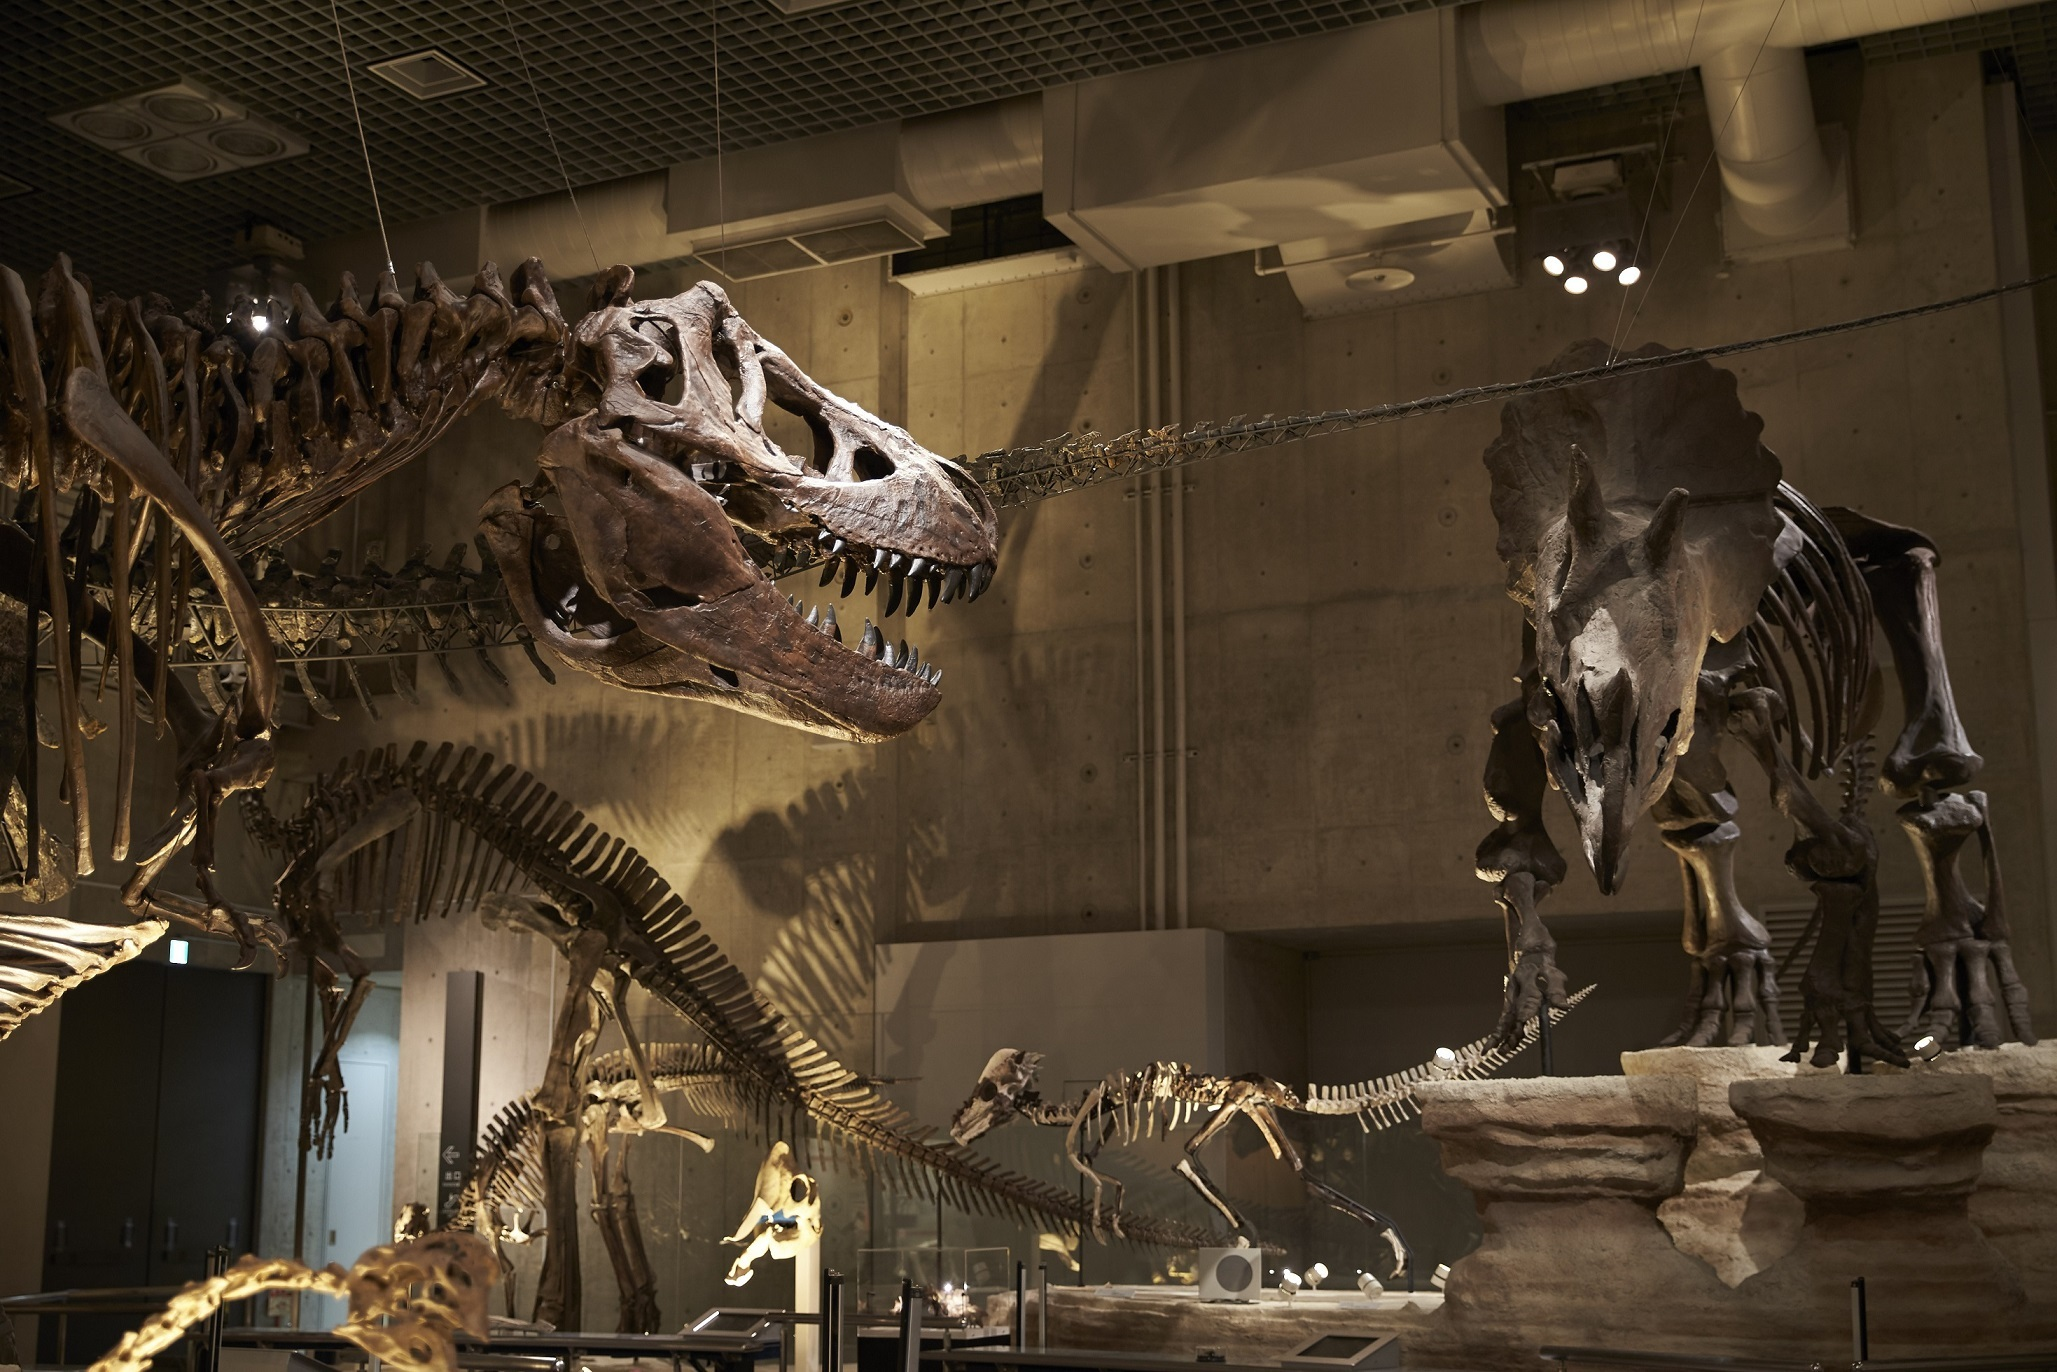 Best museums in Tokyo for kids and families